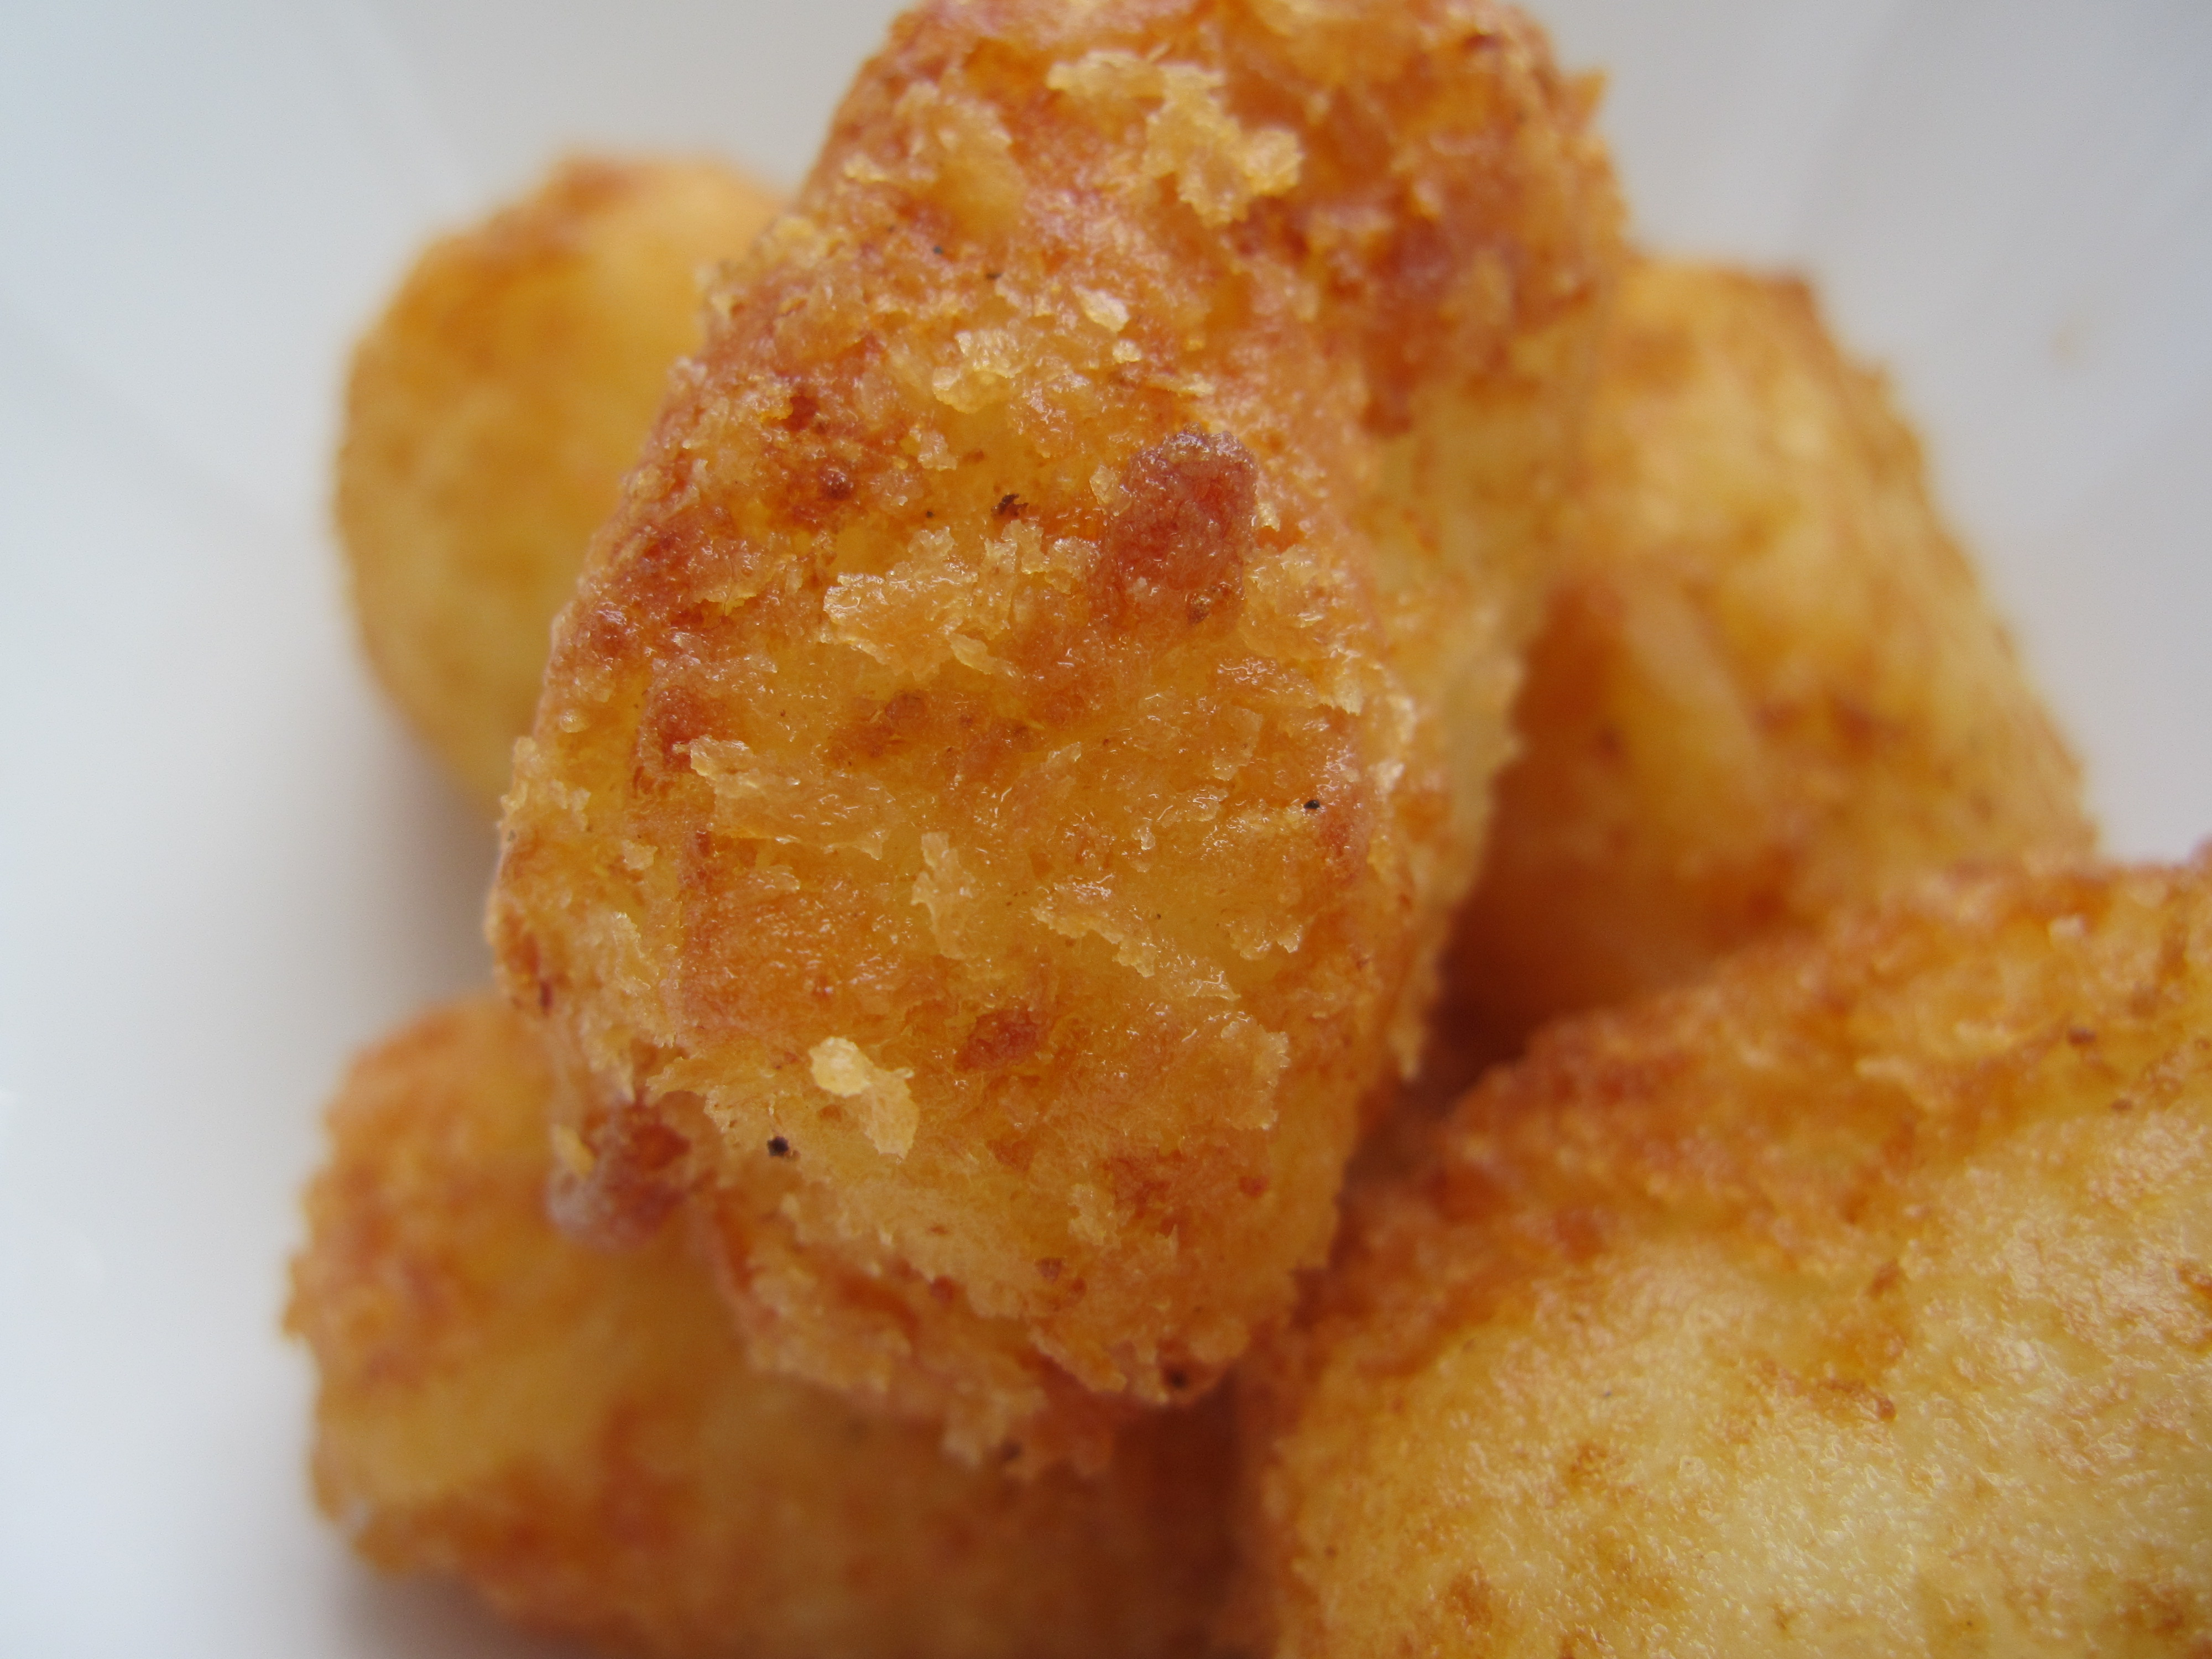 Homemade Tater Tots and Blue Cheese Sauce – Candice Birdsong